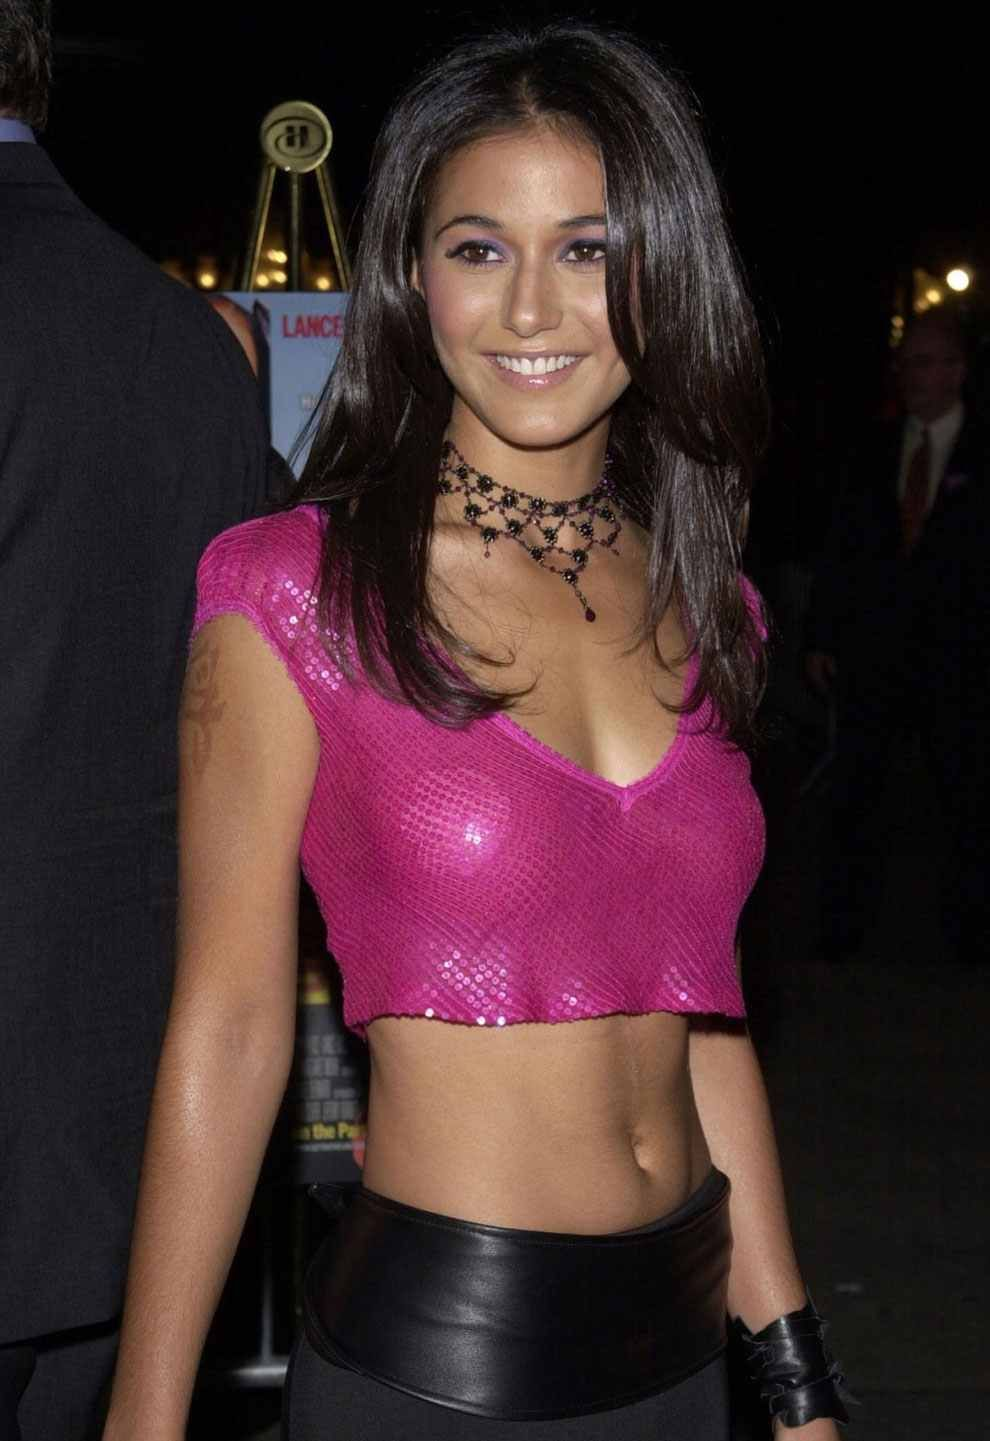 Hacked Emmanuelle Chriqui nude (21 foto and video), Topless, Paparazzi, Selfie, cameltoe 2018